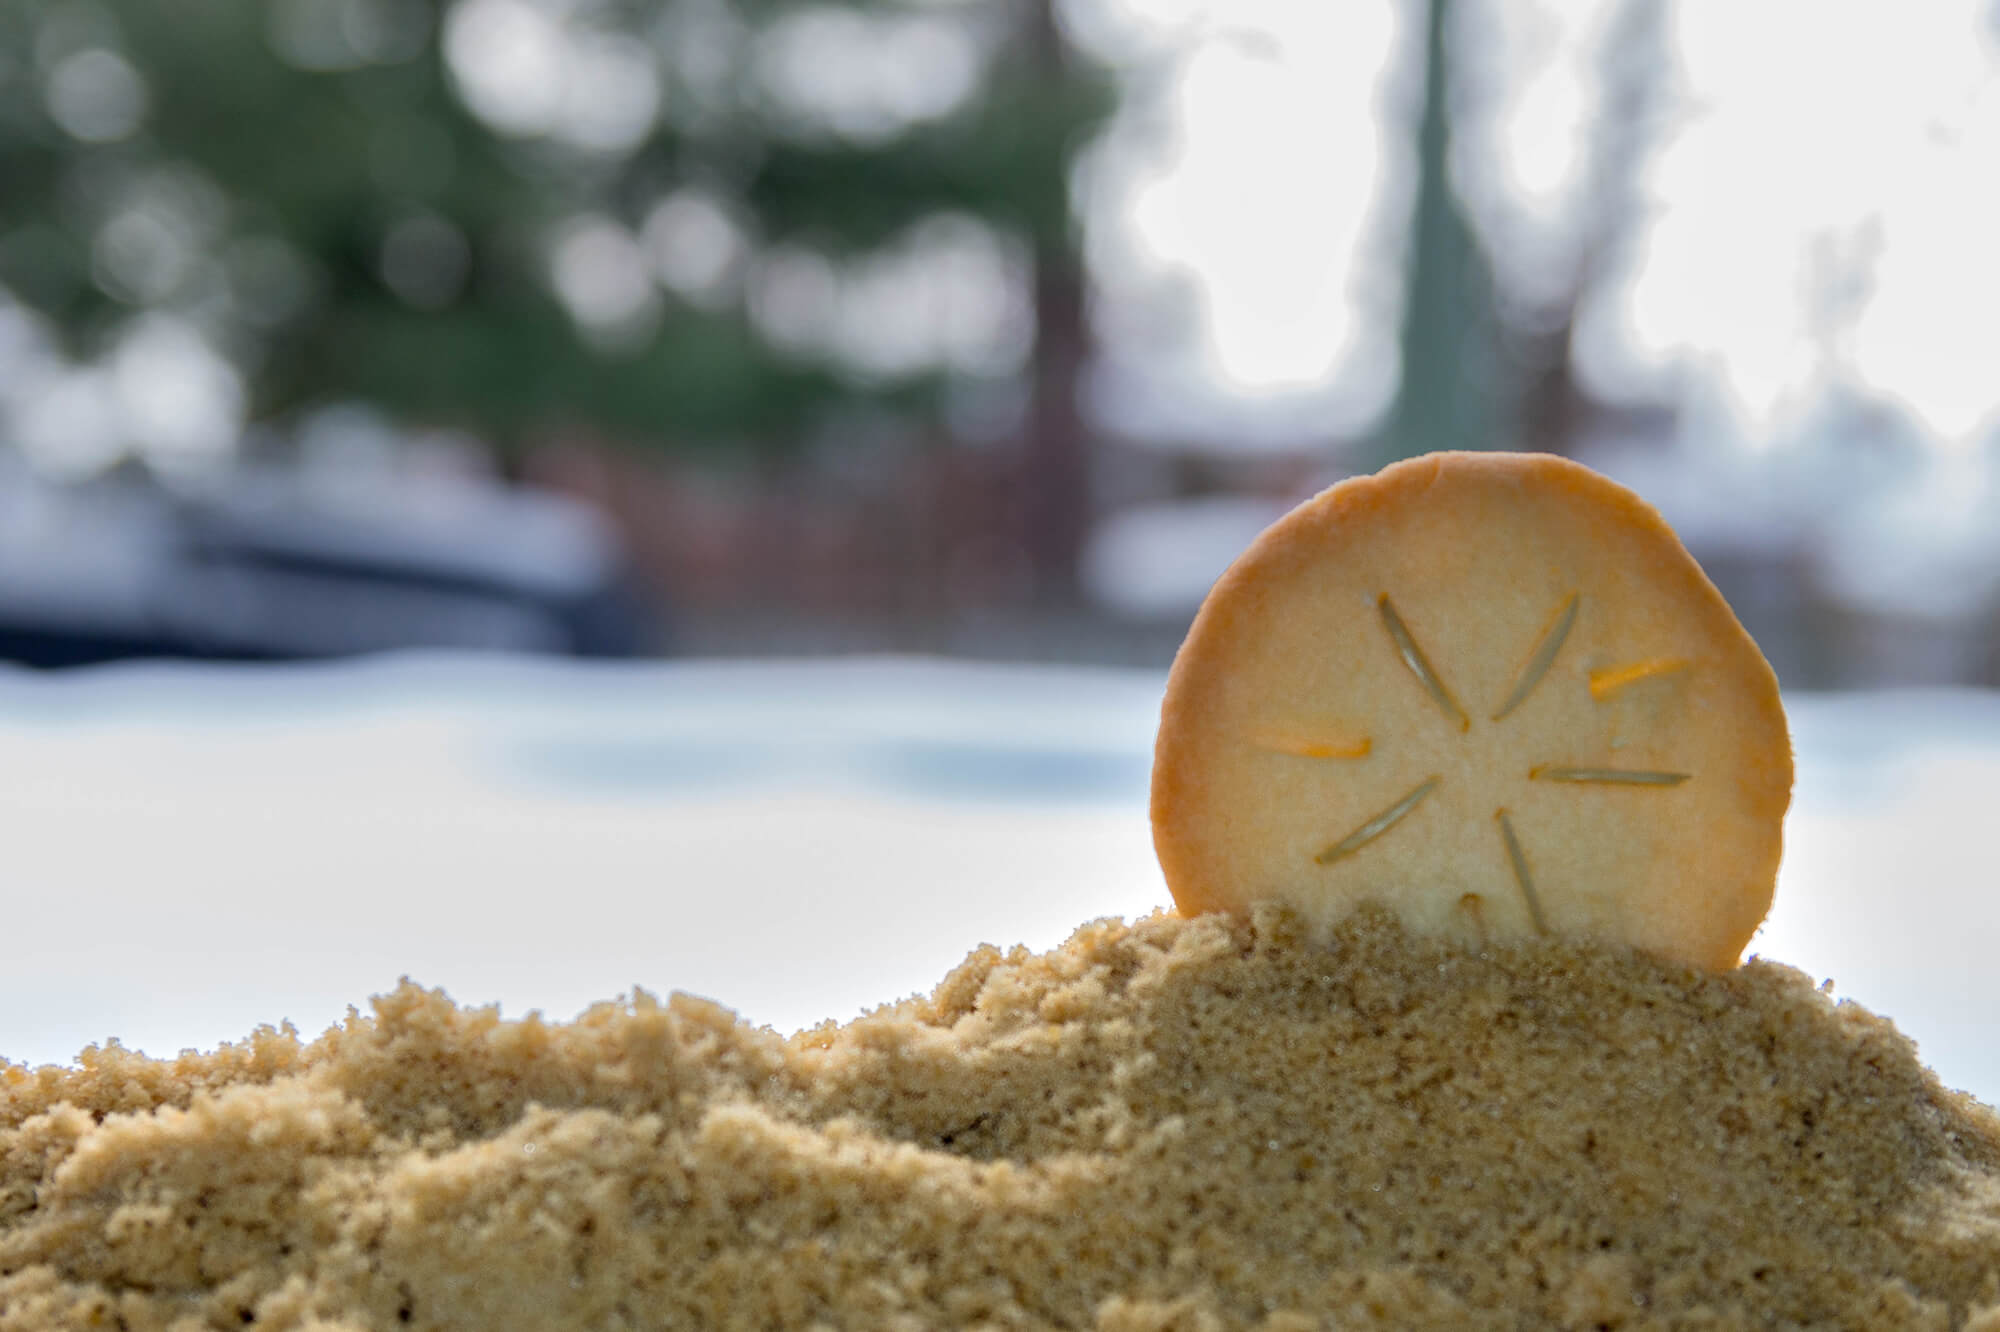 Scuba Diving Sand Dollar Cookie At Christmas Time In Canada